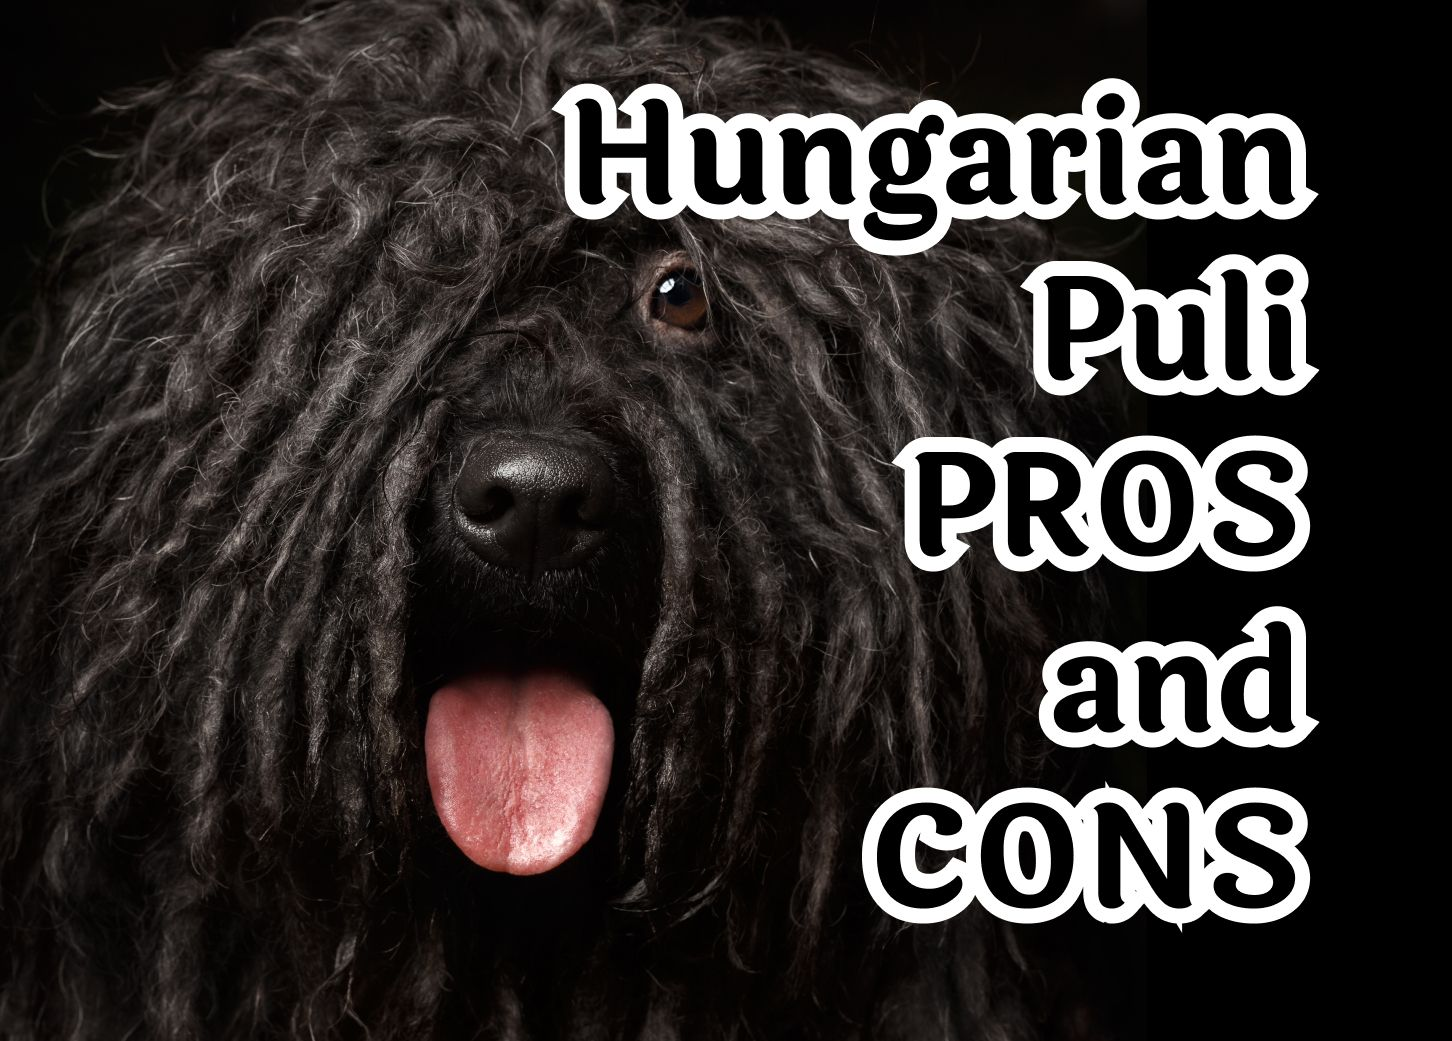 The 7 characteristics that make the Hungarian Puli special